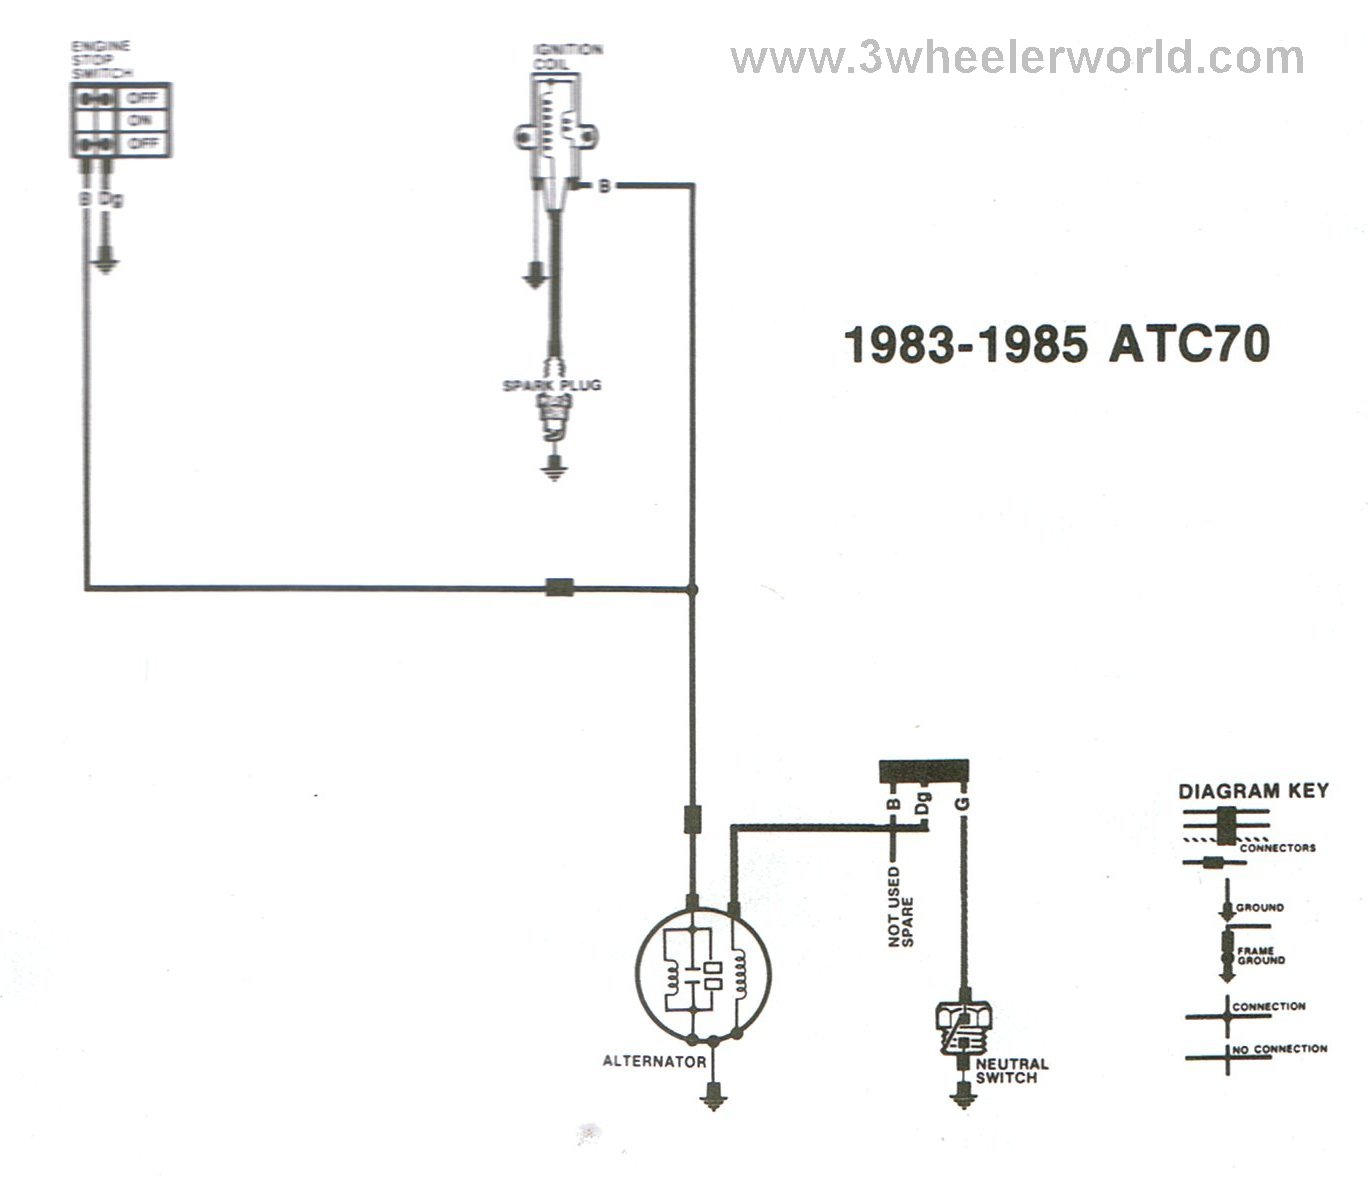 ATC70x83Thru85 3 wheeler world tech help honda wiring diagrams atc 70 wiring diagram at honlapkeszites.co